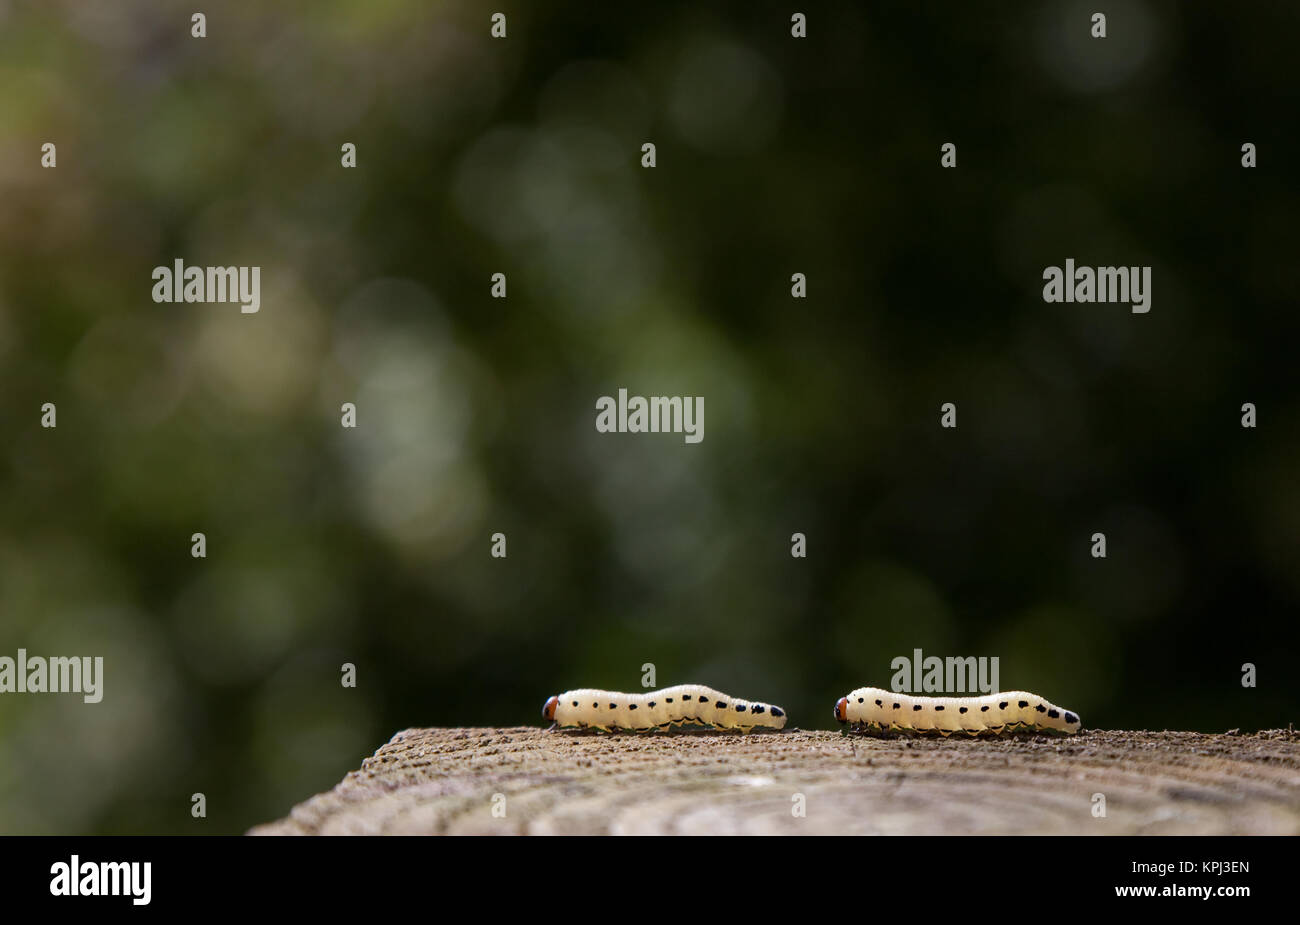 Two caterpillars on a wooden post - Stock Image